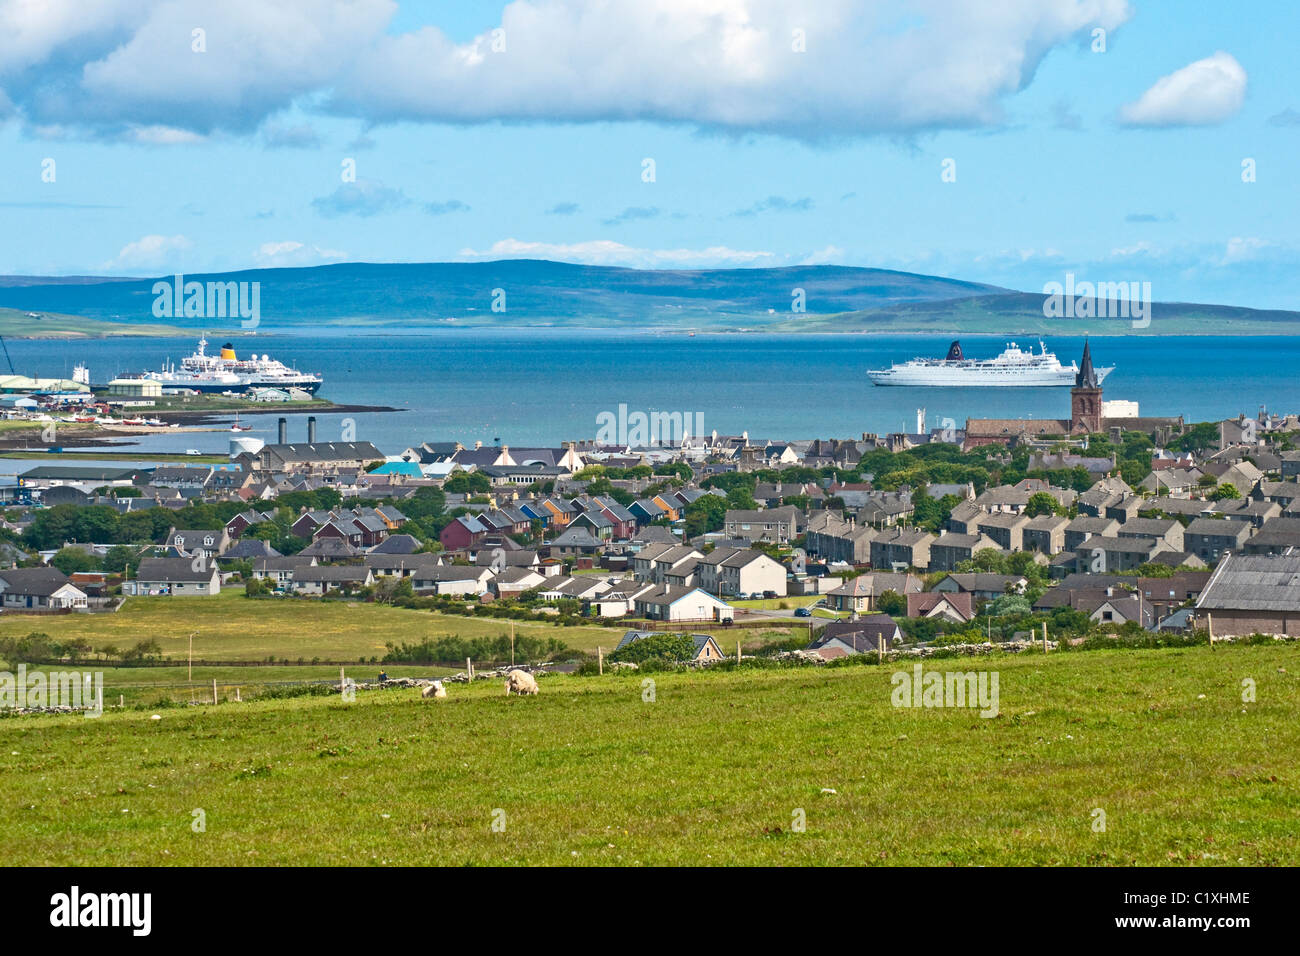 A general view over Kirkwall in Orkney towards the harbour with cruise ships at the pier and anchored in Kirkwall - Stock Image